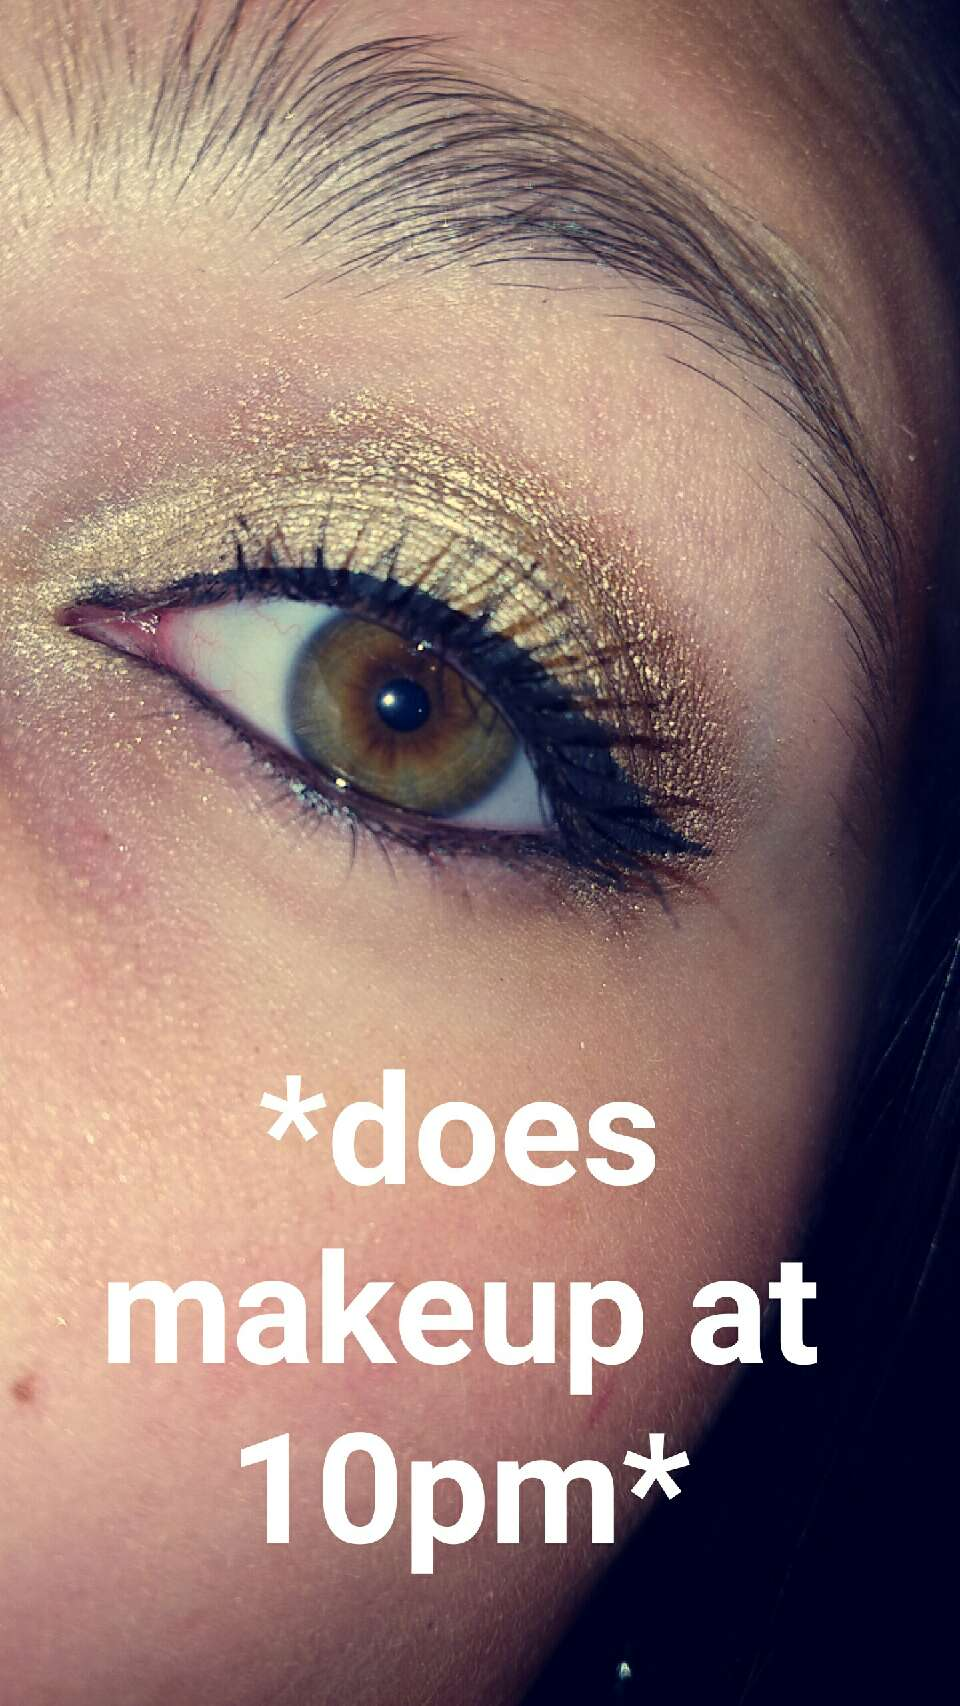 All I used is the Maybelline Color Tattoo in Barley Branded and Bronze along with the E.L.F. Liquid Eyeliner